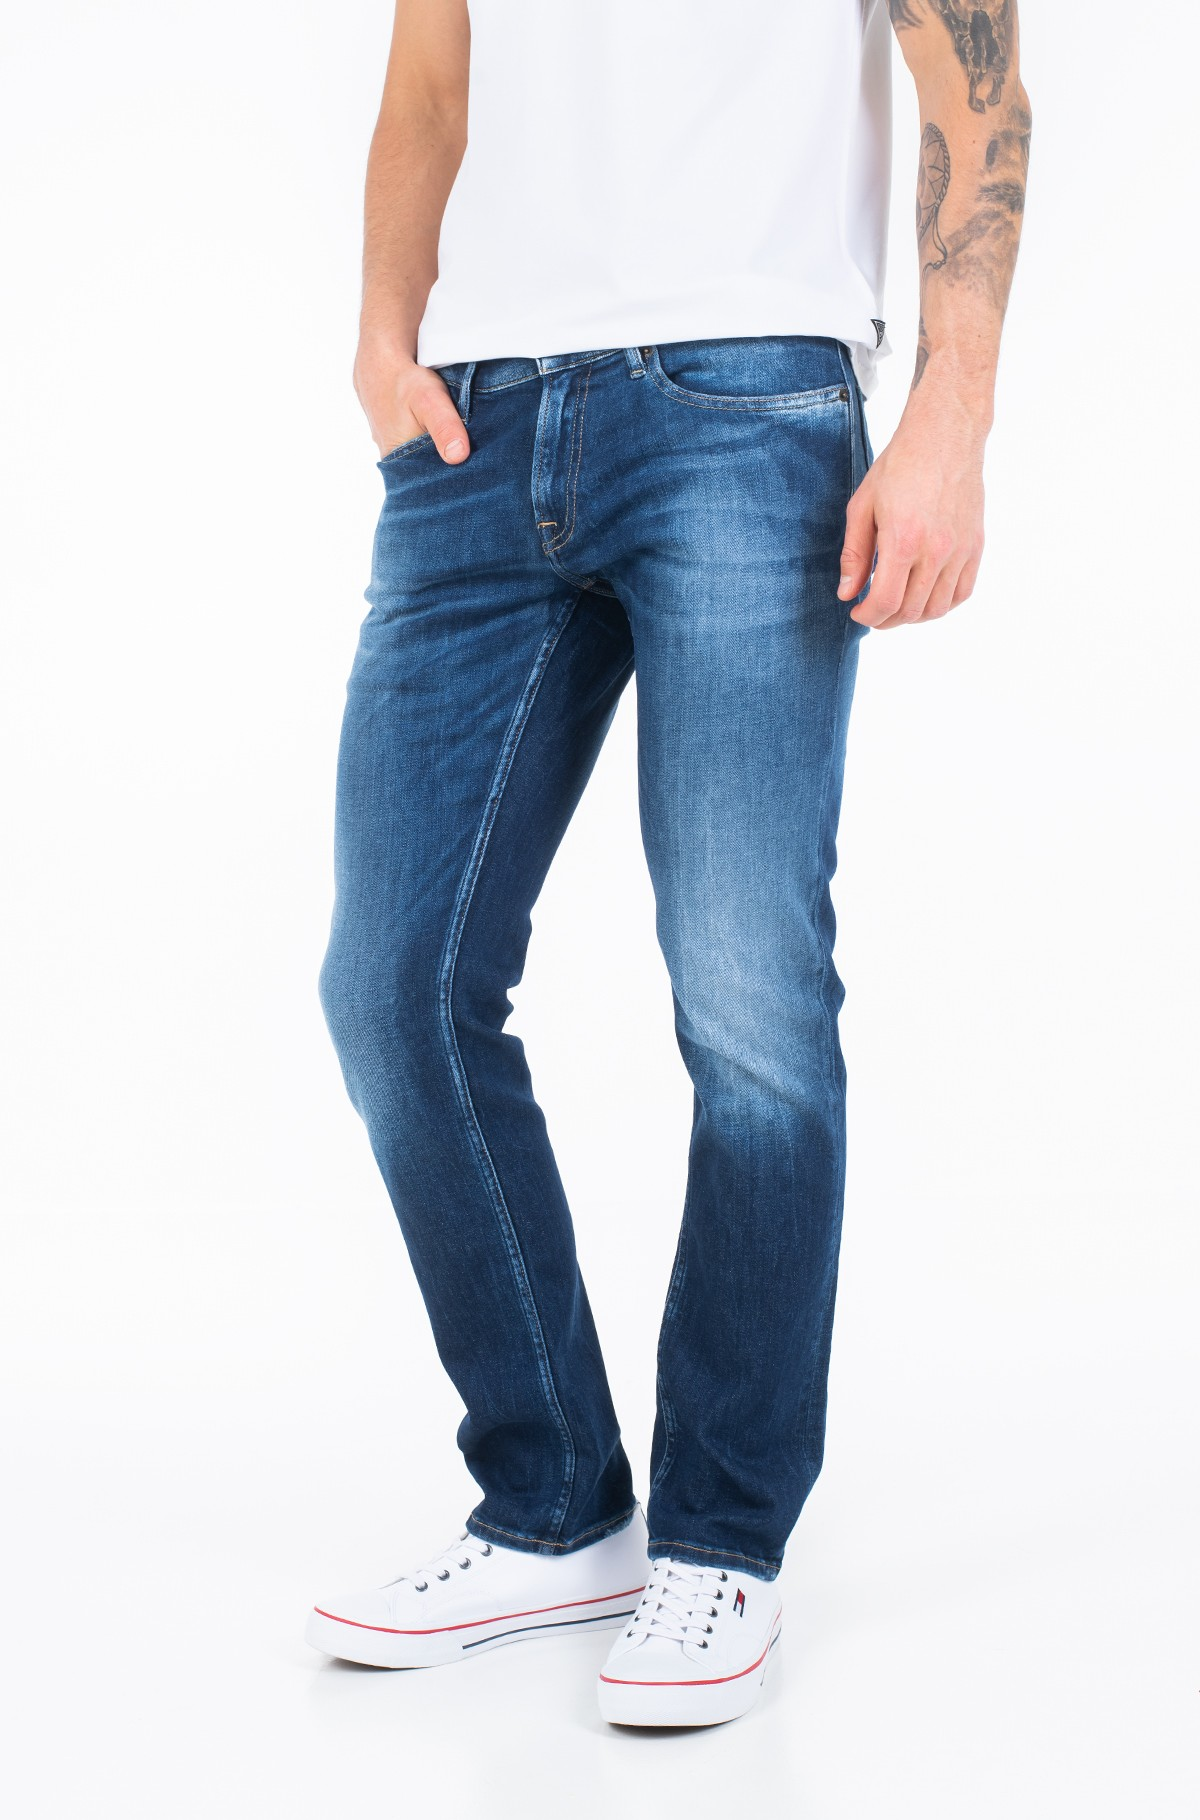 Jeans SCANTON SLIM CRBNM-full-1